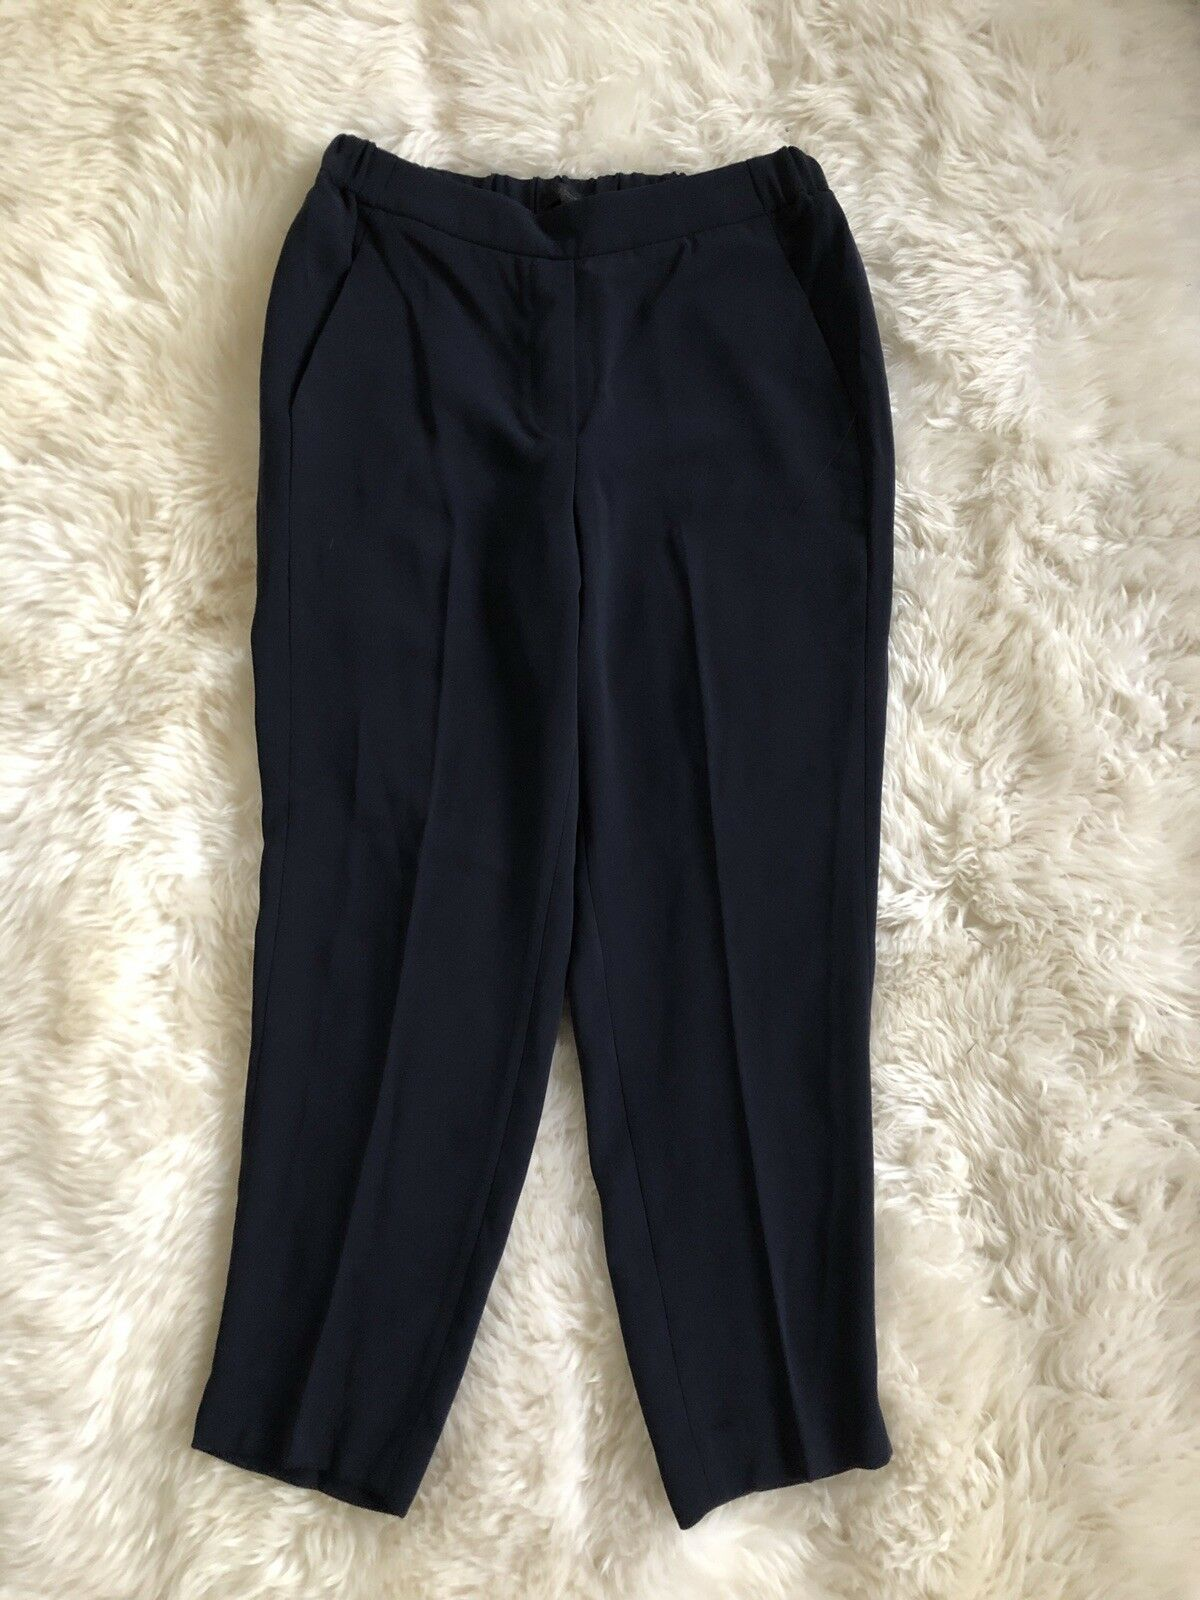 NWT J. CREW EASY PANTS TROUSER E1756  NAVY DRESS CASUAL PANTS 4 NEW